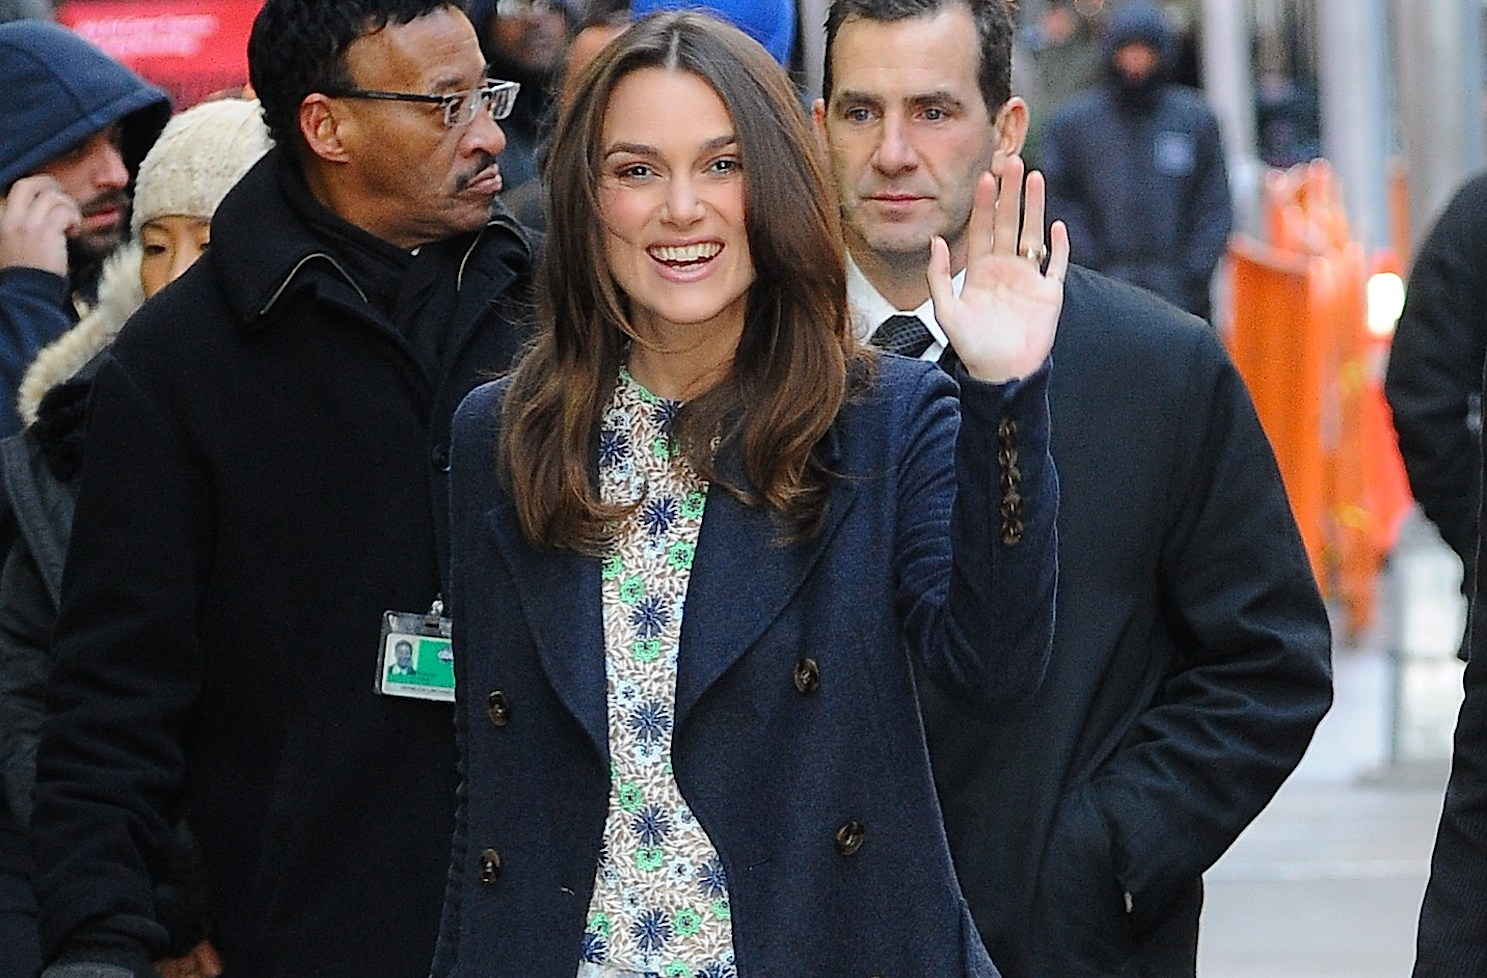 Keira Knightley arriving on 'Good Morning America' today in NYC